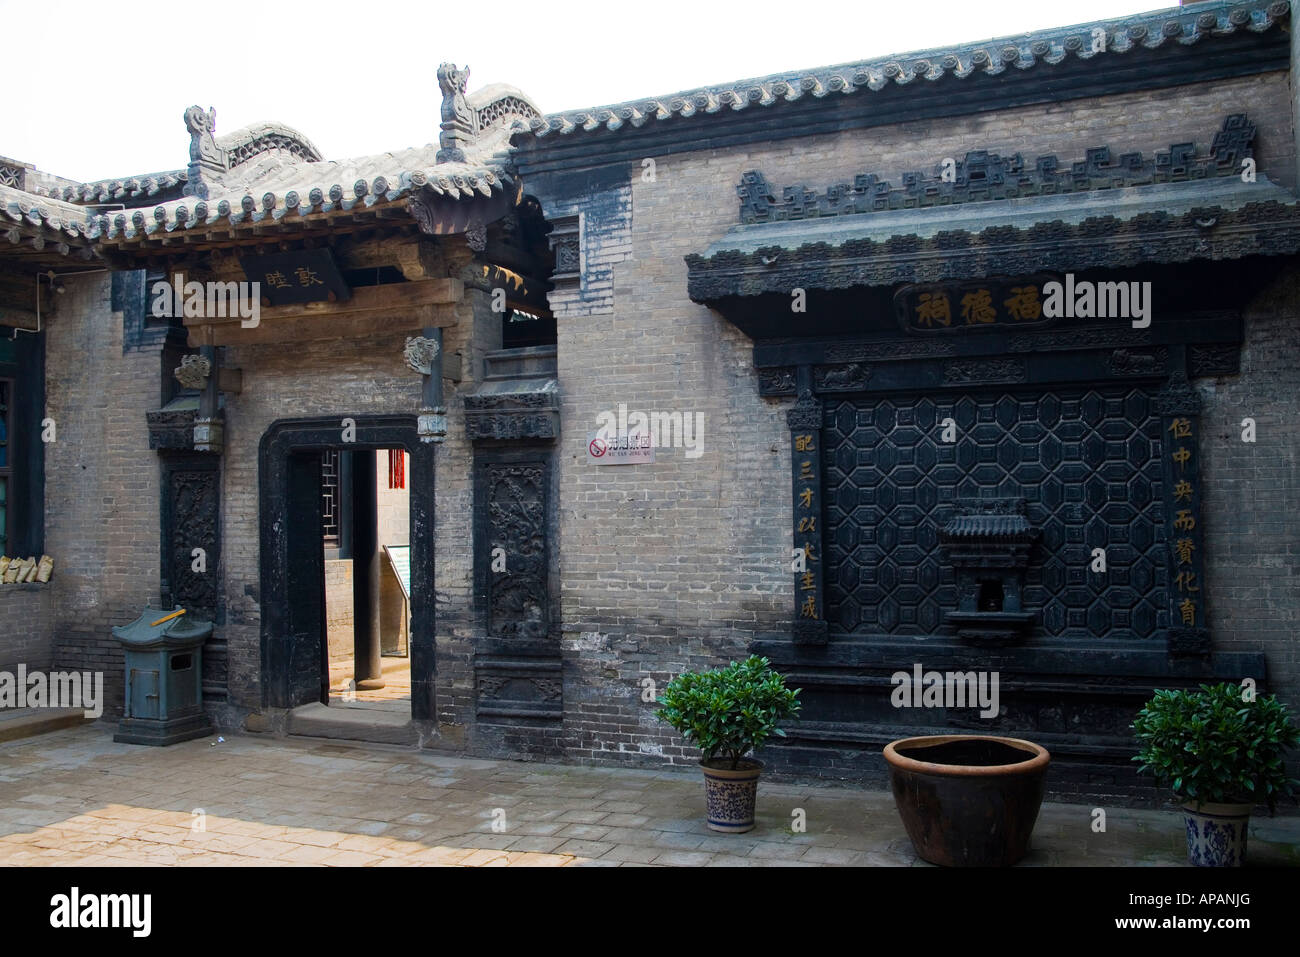 The Yard of Qiao Family-a wealthy family of that period named Qiao Shanxi Stock Photo